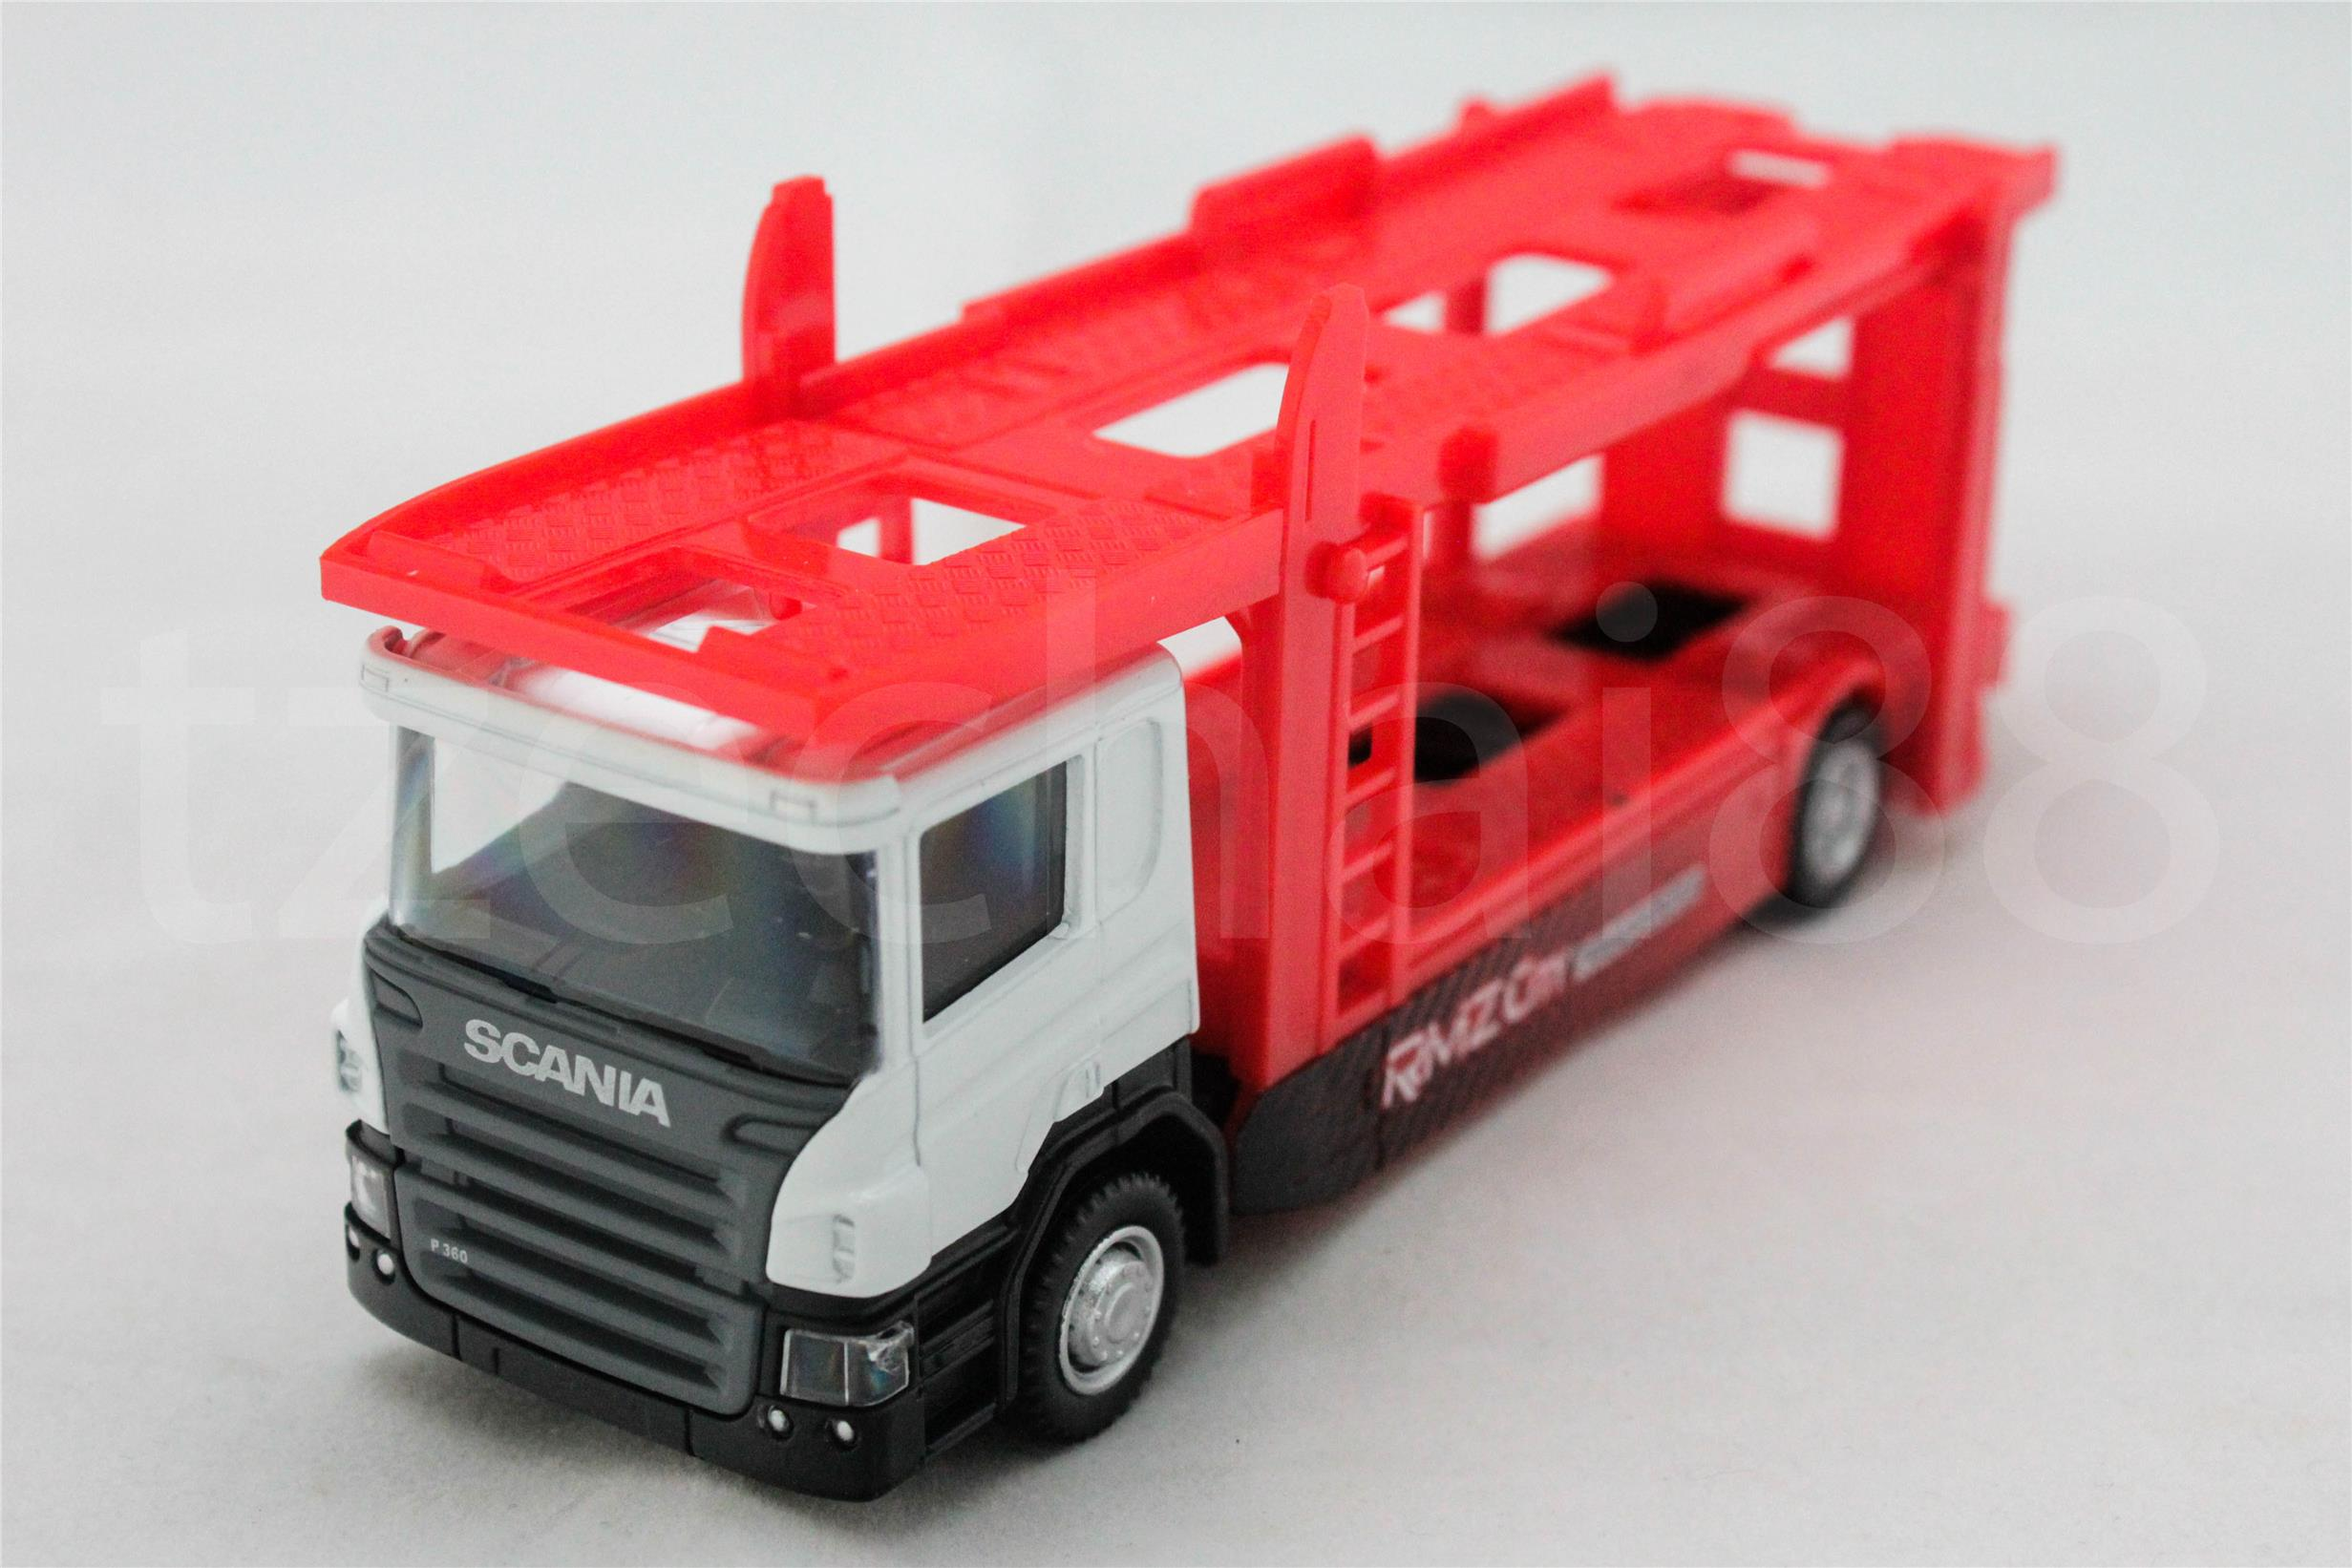 RMZ City 1:64 DIECAST Scania Car Carrier Trailer White Color Model New